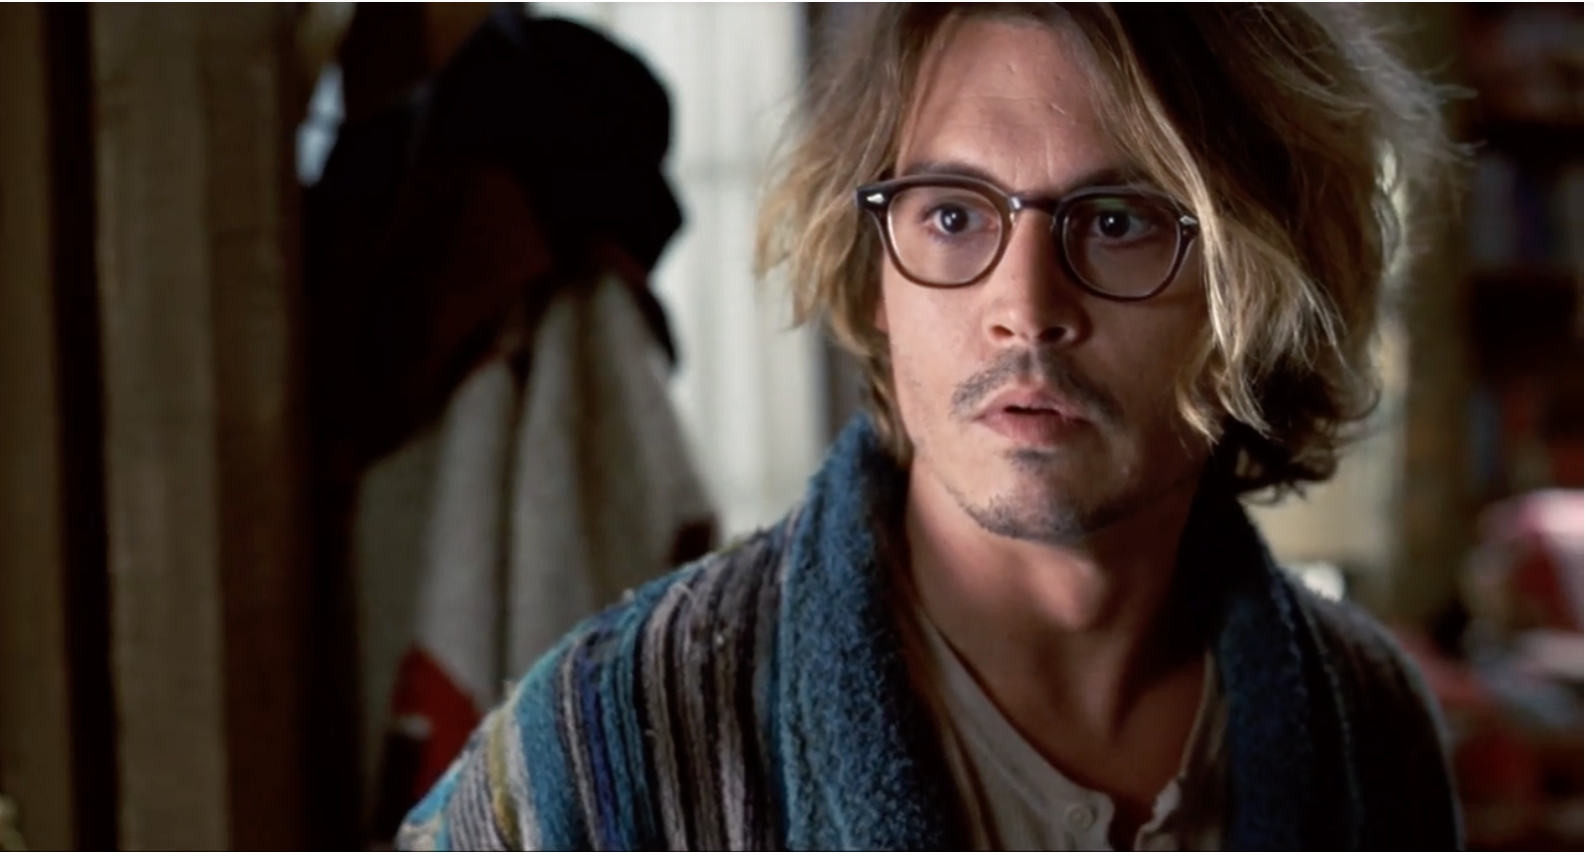 Johnny Depp looking unsettled in house coat